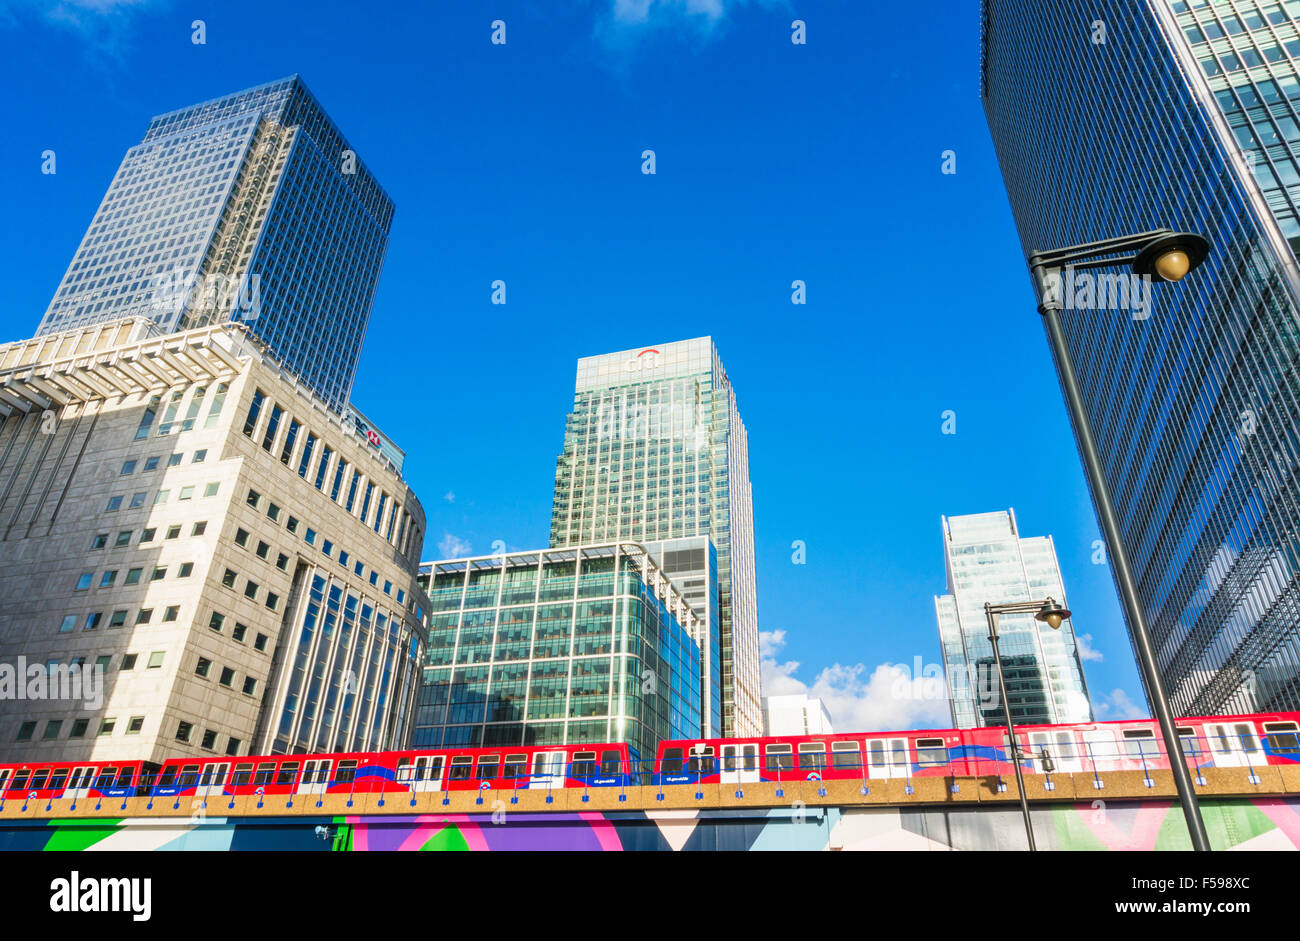 Canary wharf skyscrapers CBD banking and financial district Docklands London England UK GB EU Europe - Stock Image